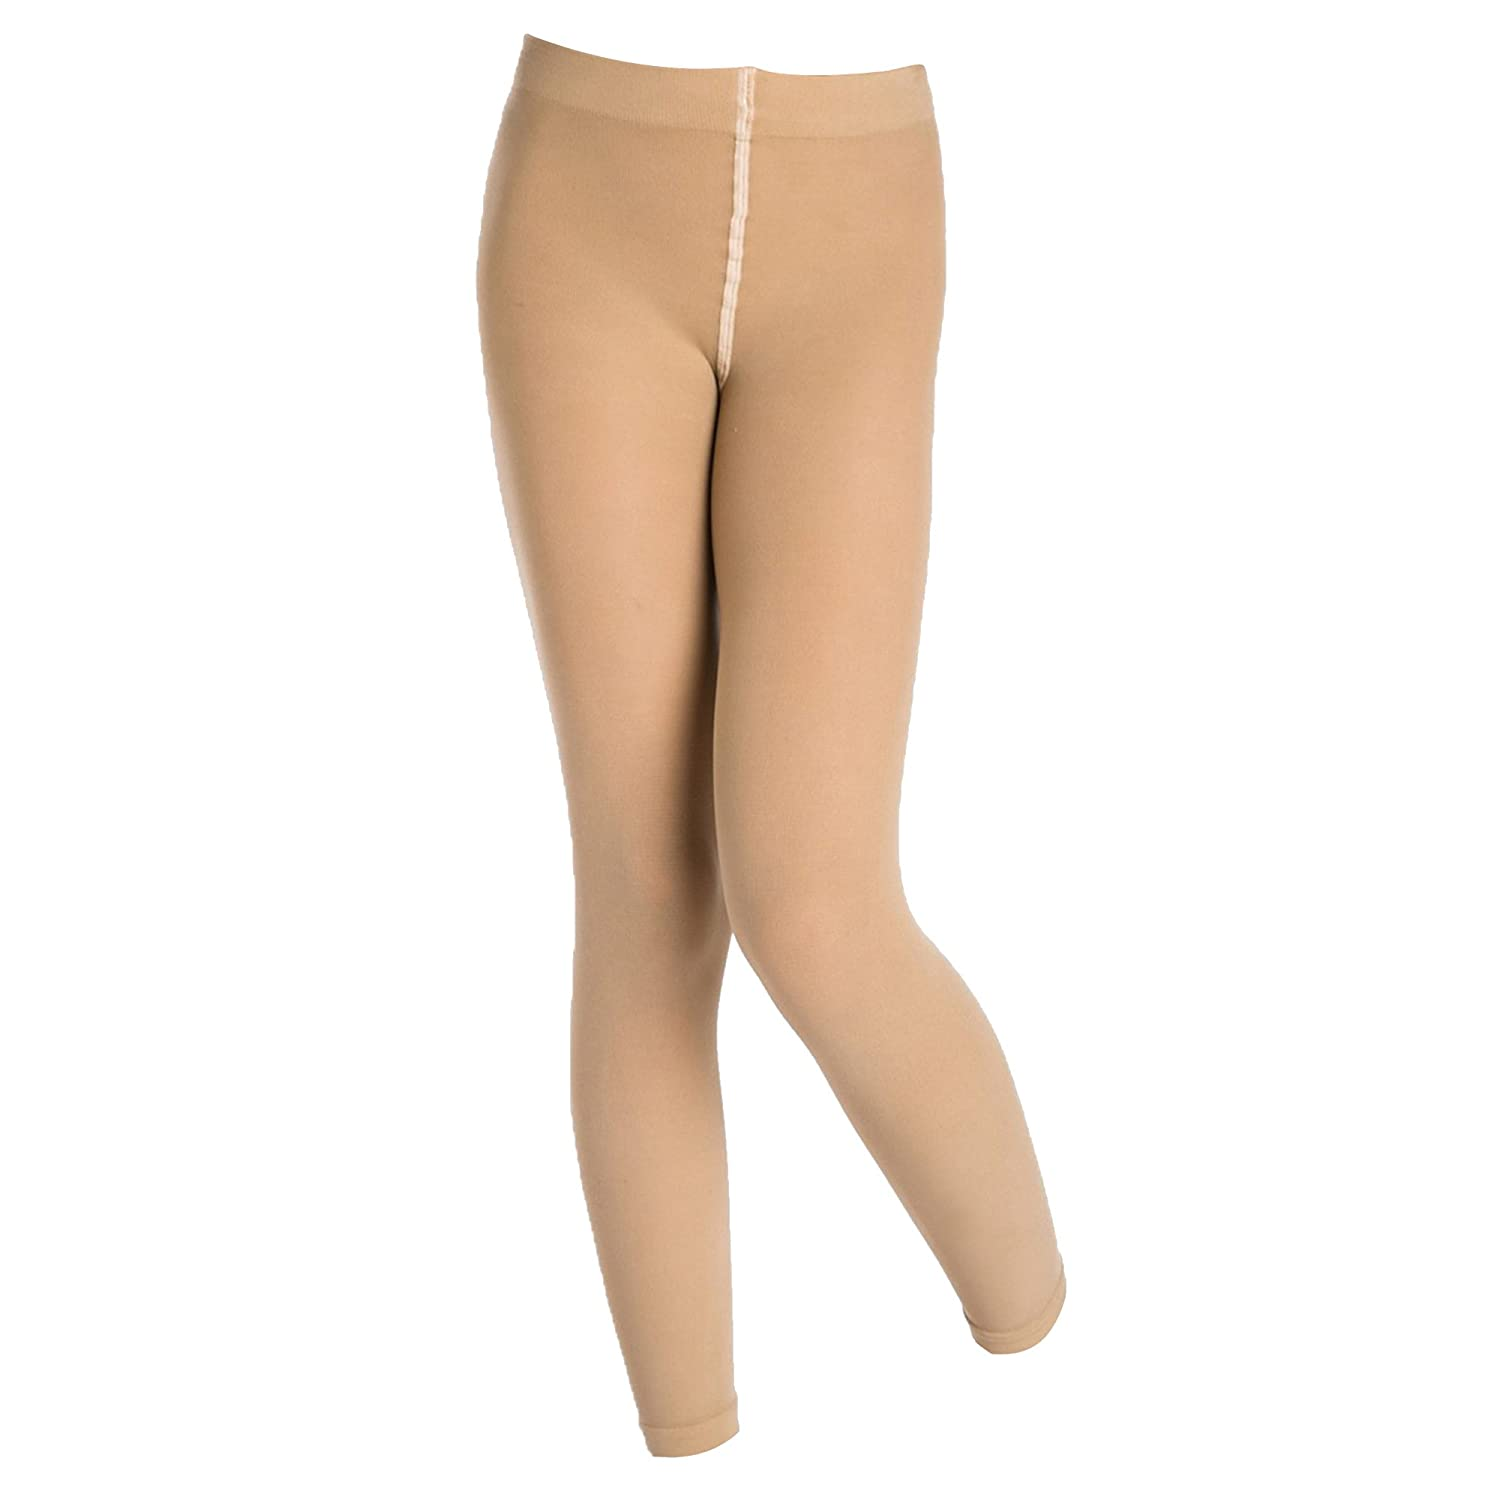 Silky Girls Dance Footless Ballet Tights (1 Pair)